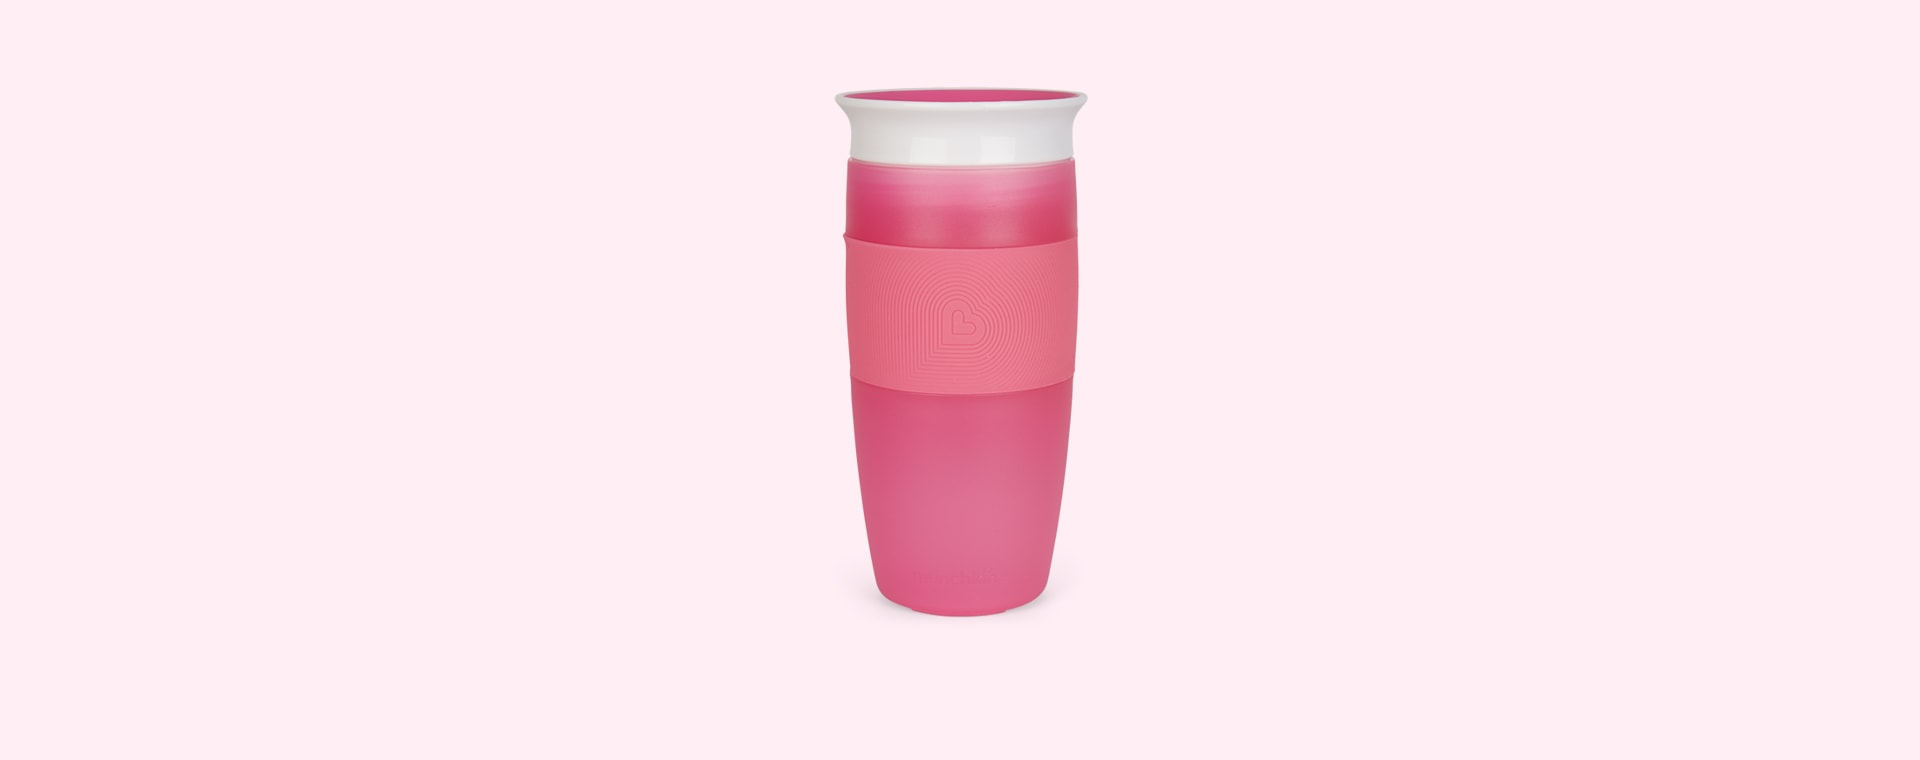 Pink Munchkin Miracle 360 Cup 14oz